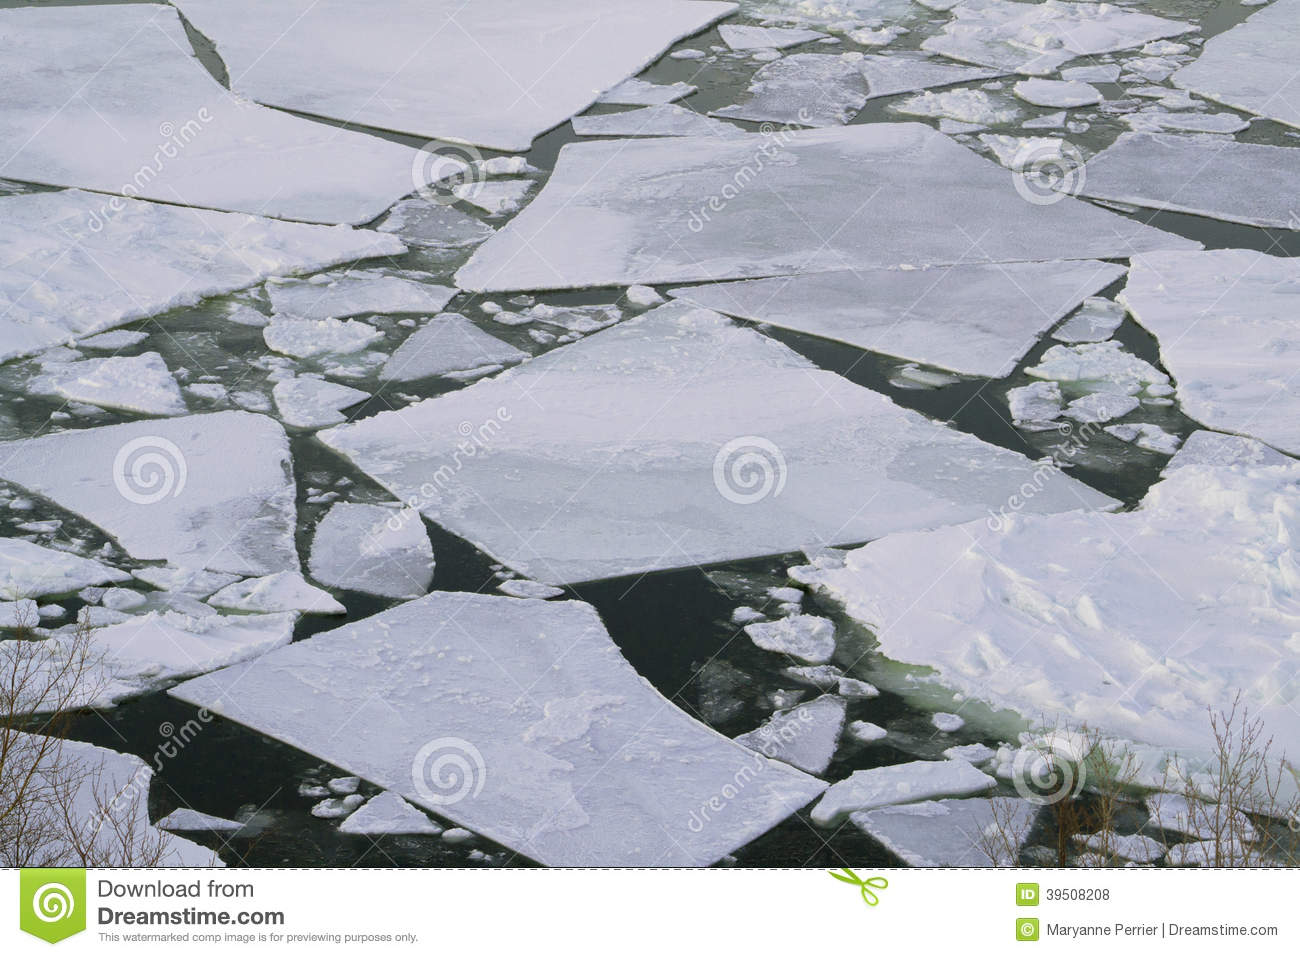 Ice Pans in the Bay